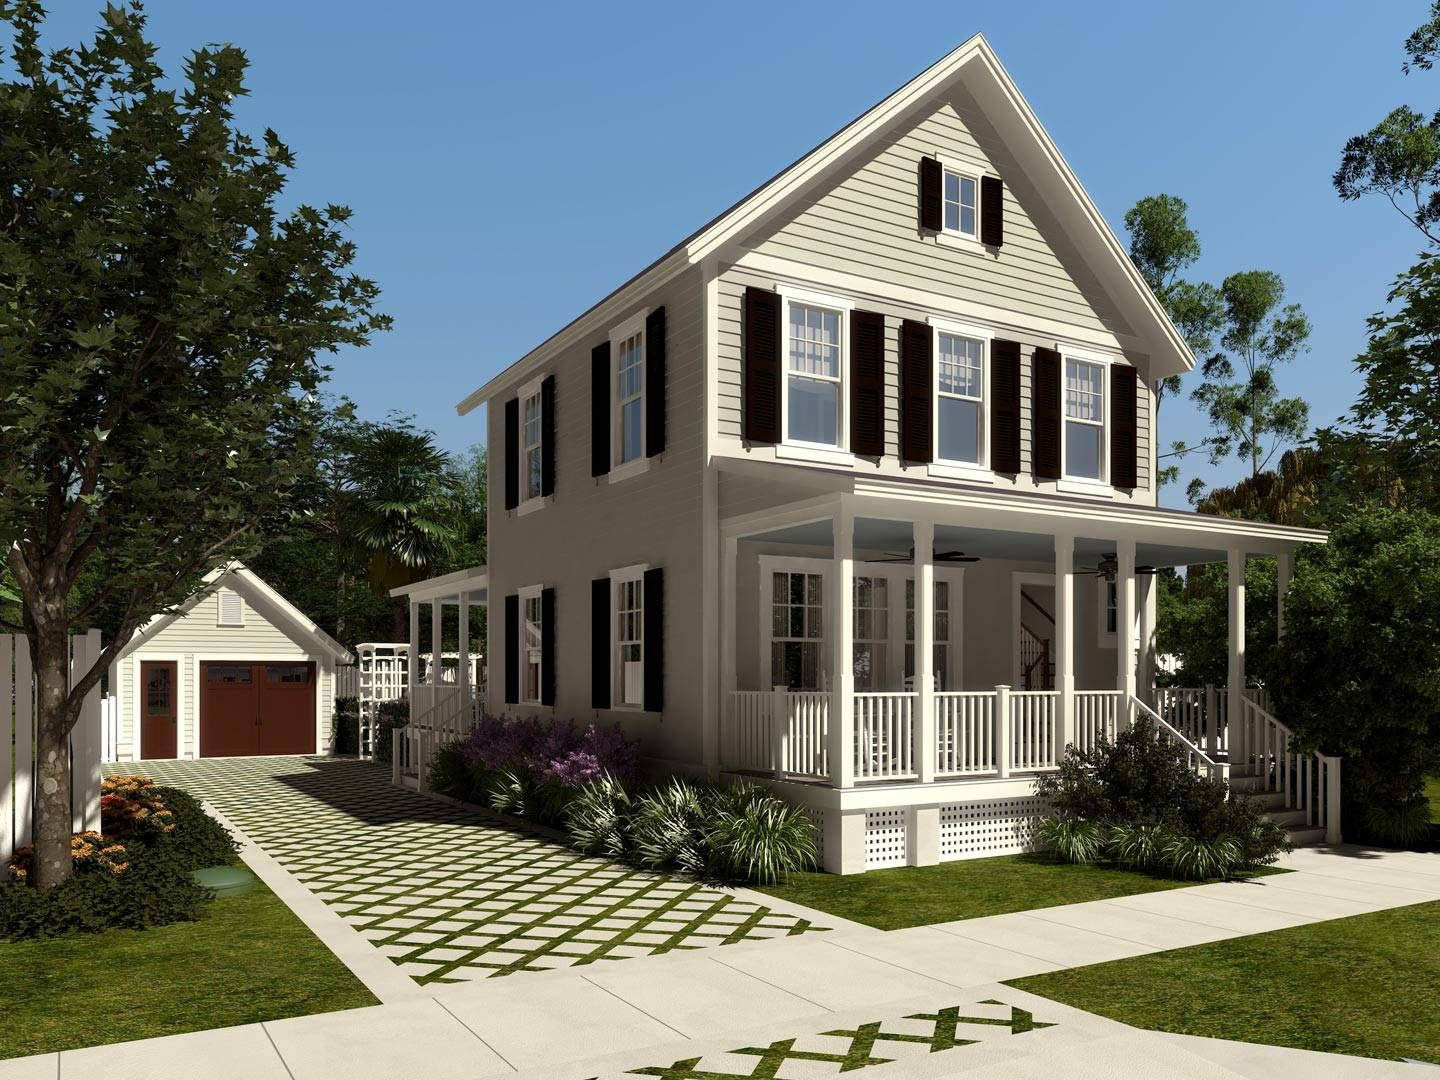 9 building plans for cozy affordable cottages folk Affordable house construction